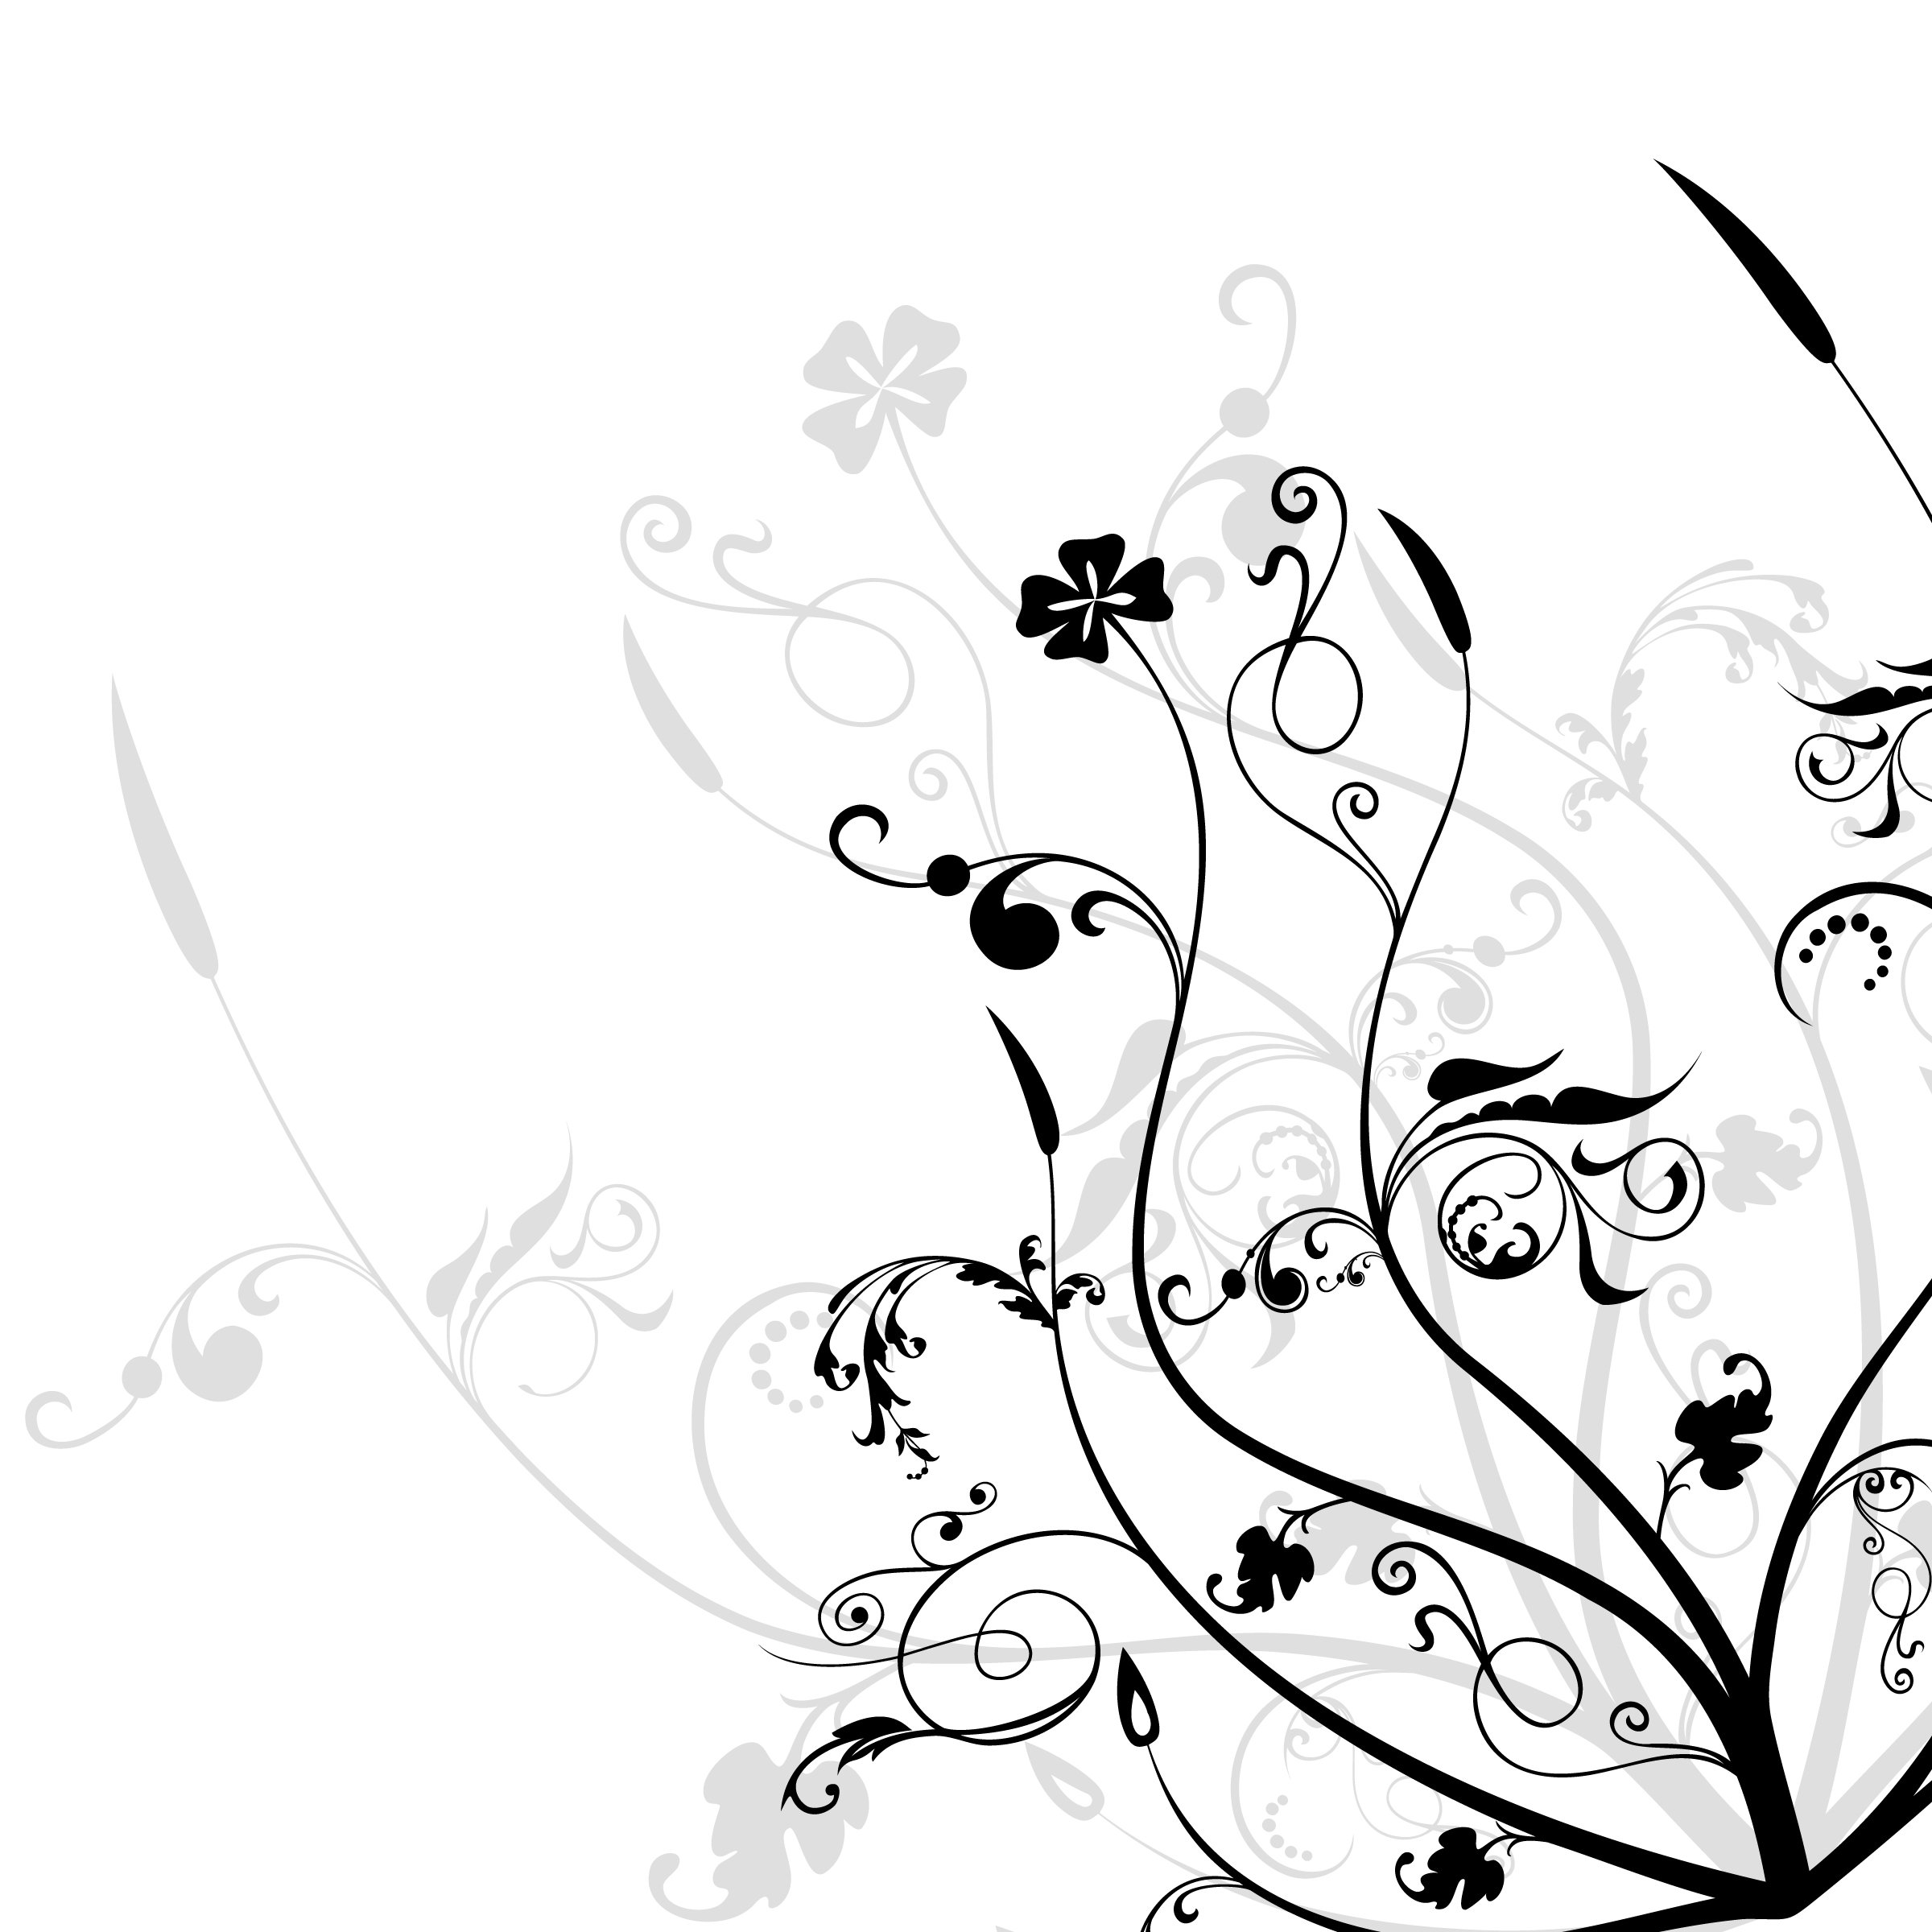 14 black and white floral designs images black and white flower design black and white flower - Any design using black and white ...